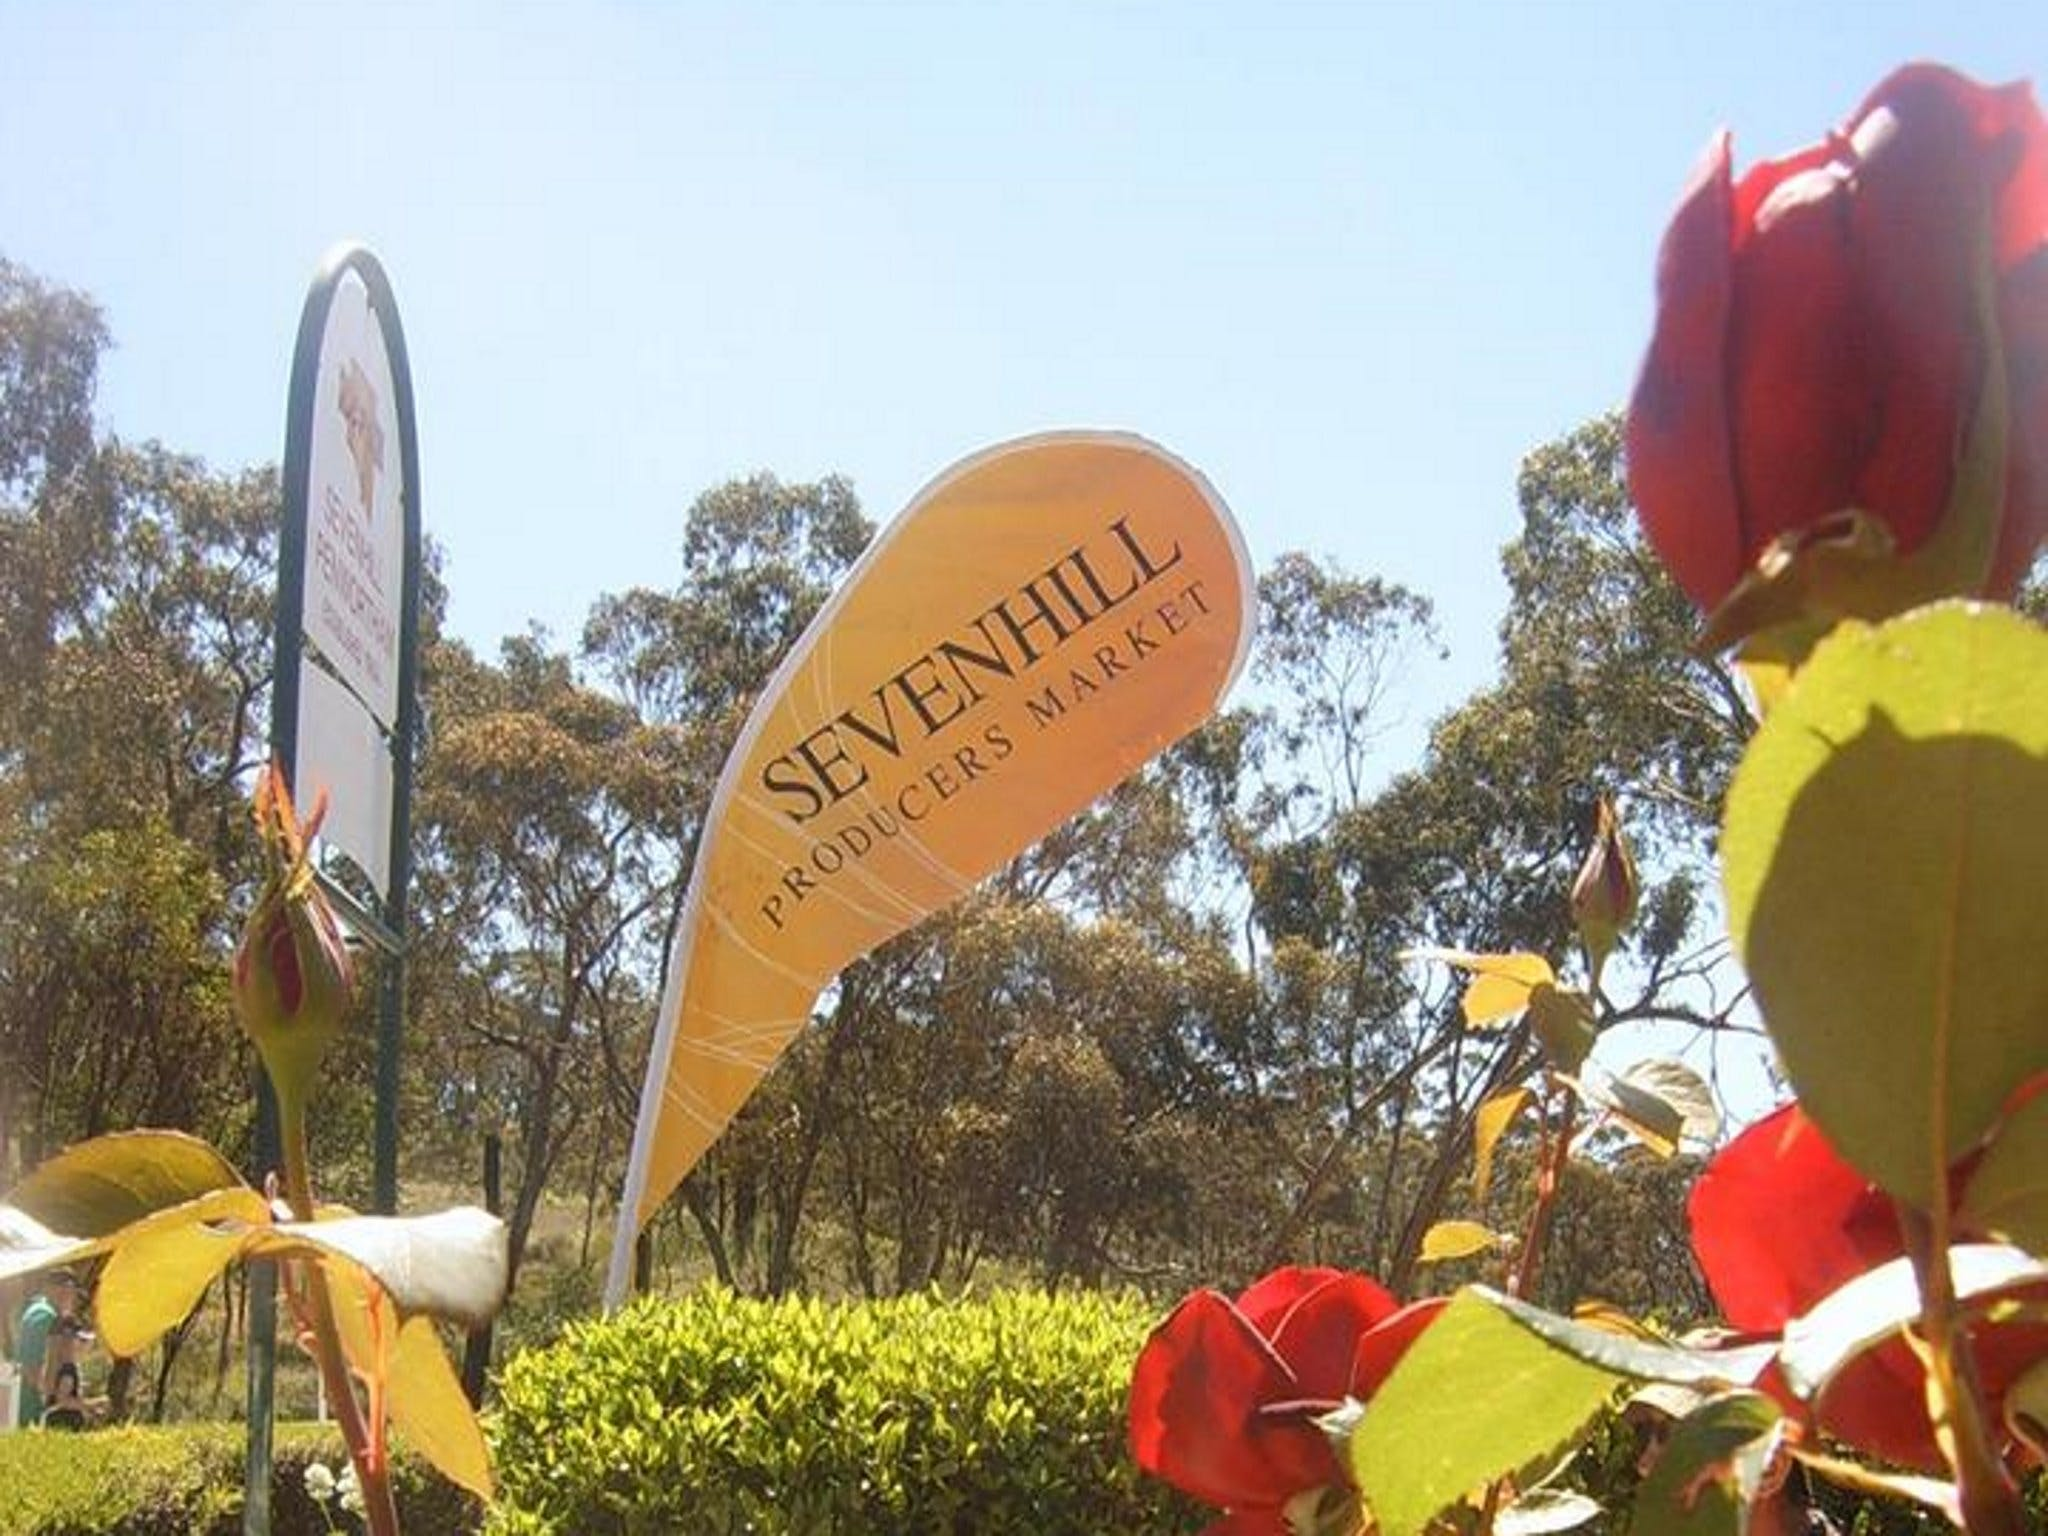 Sevenhill Producers Market - Accommodation in Brisbane